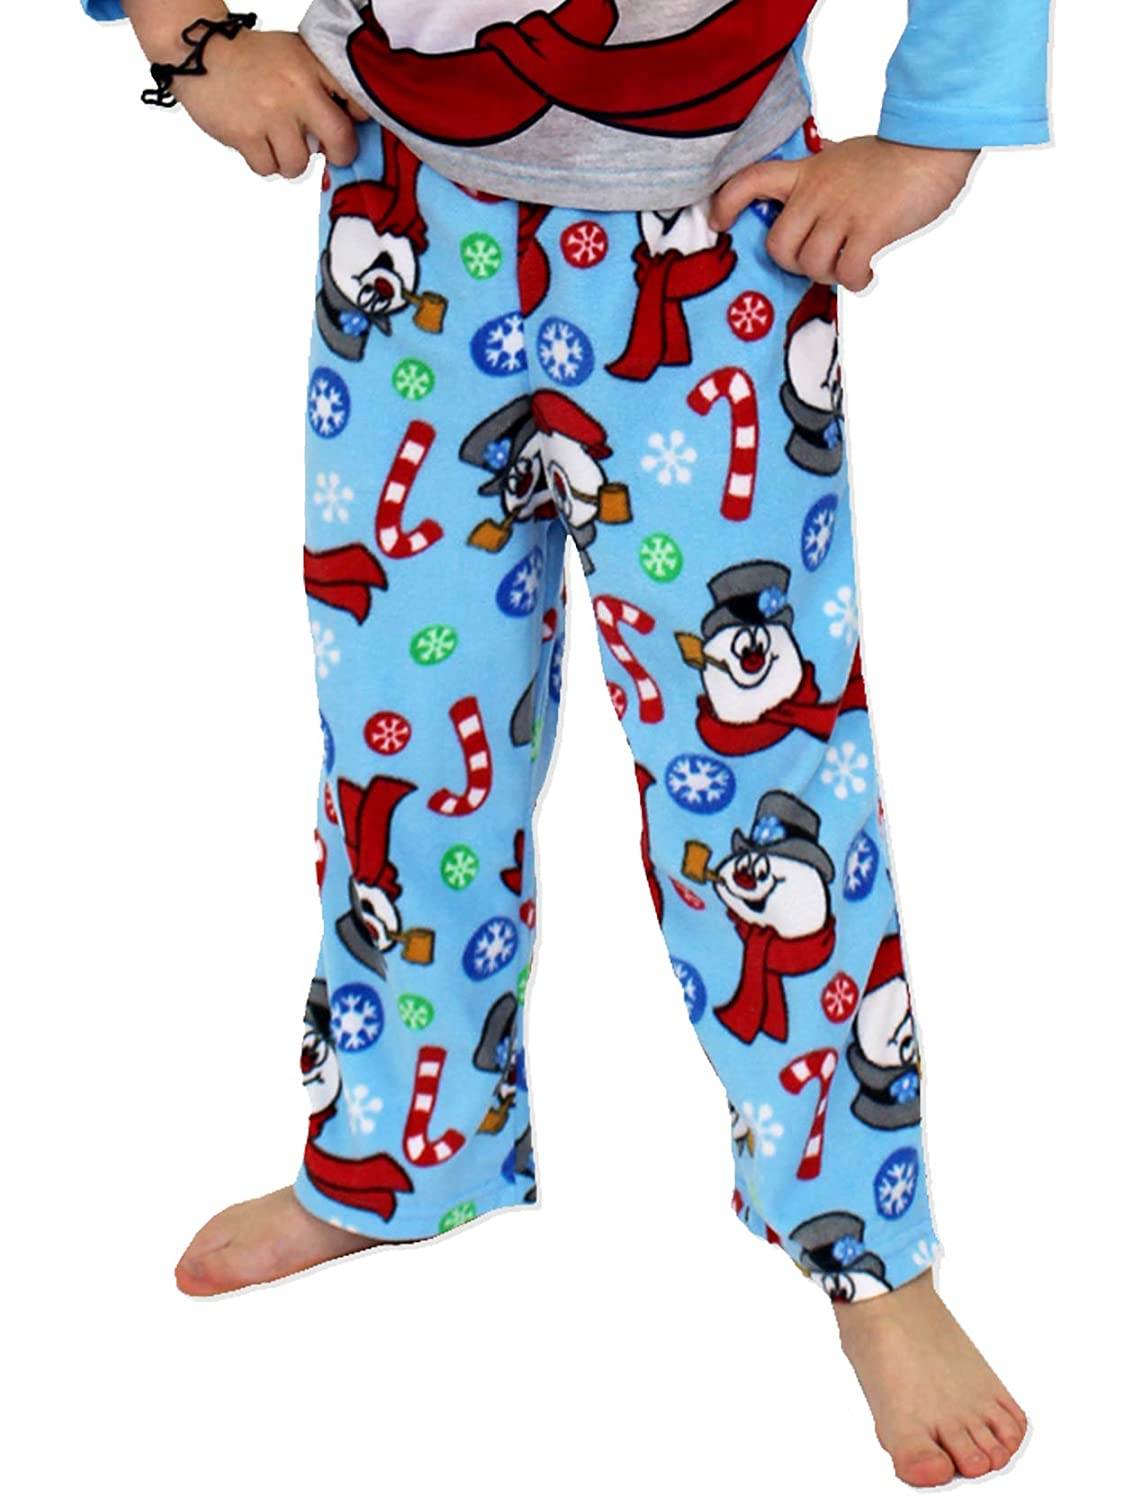 203c4b6f02 Amazon.com  Frosty the Snowman Christmas Holiday Family Sleepwear Pajamas  (Adult Kid Toddler)  Clothing